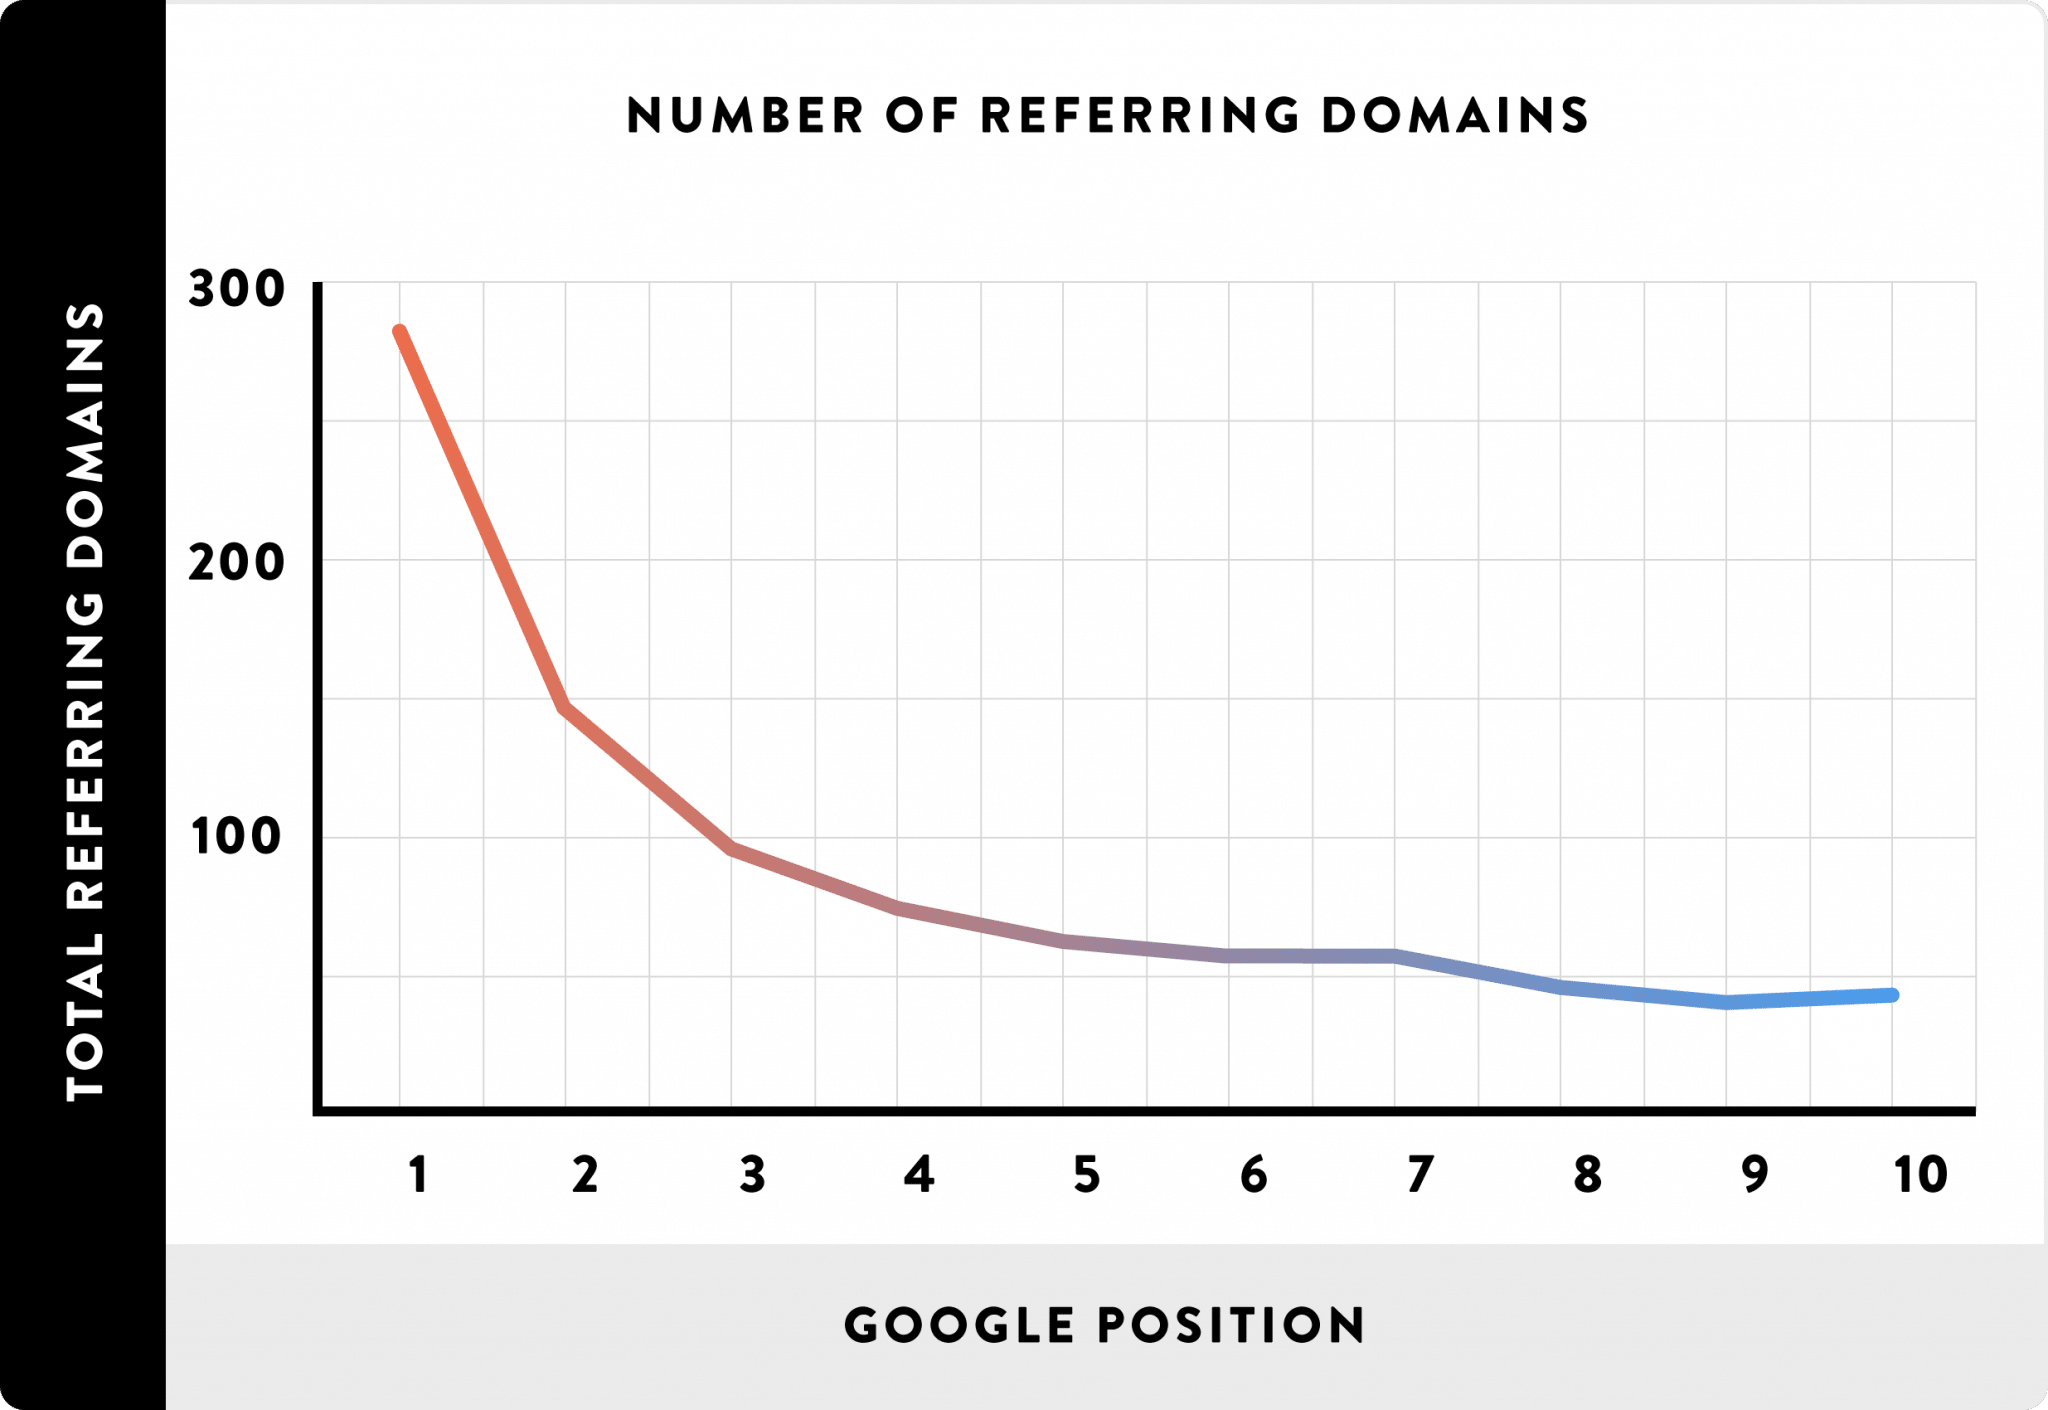 Number of Referring Domains Correlate With Rankings